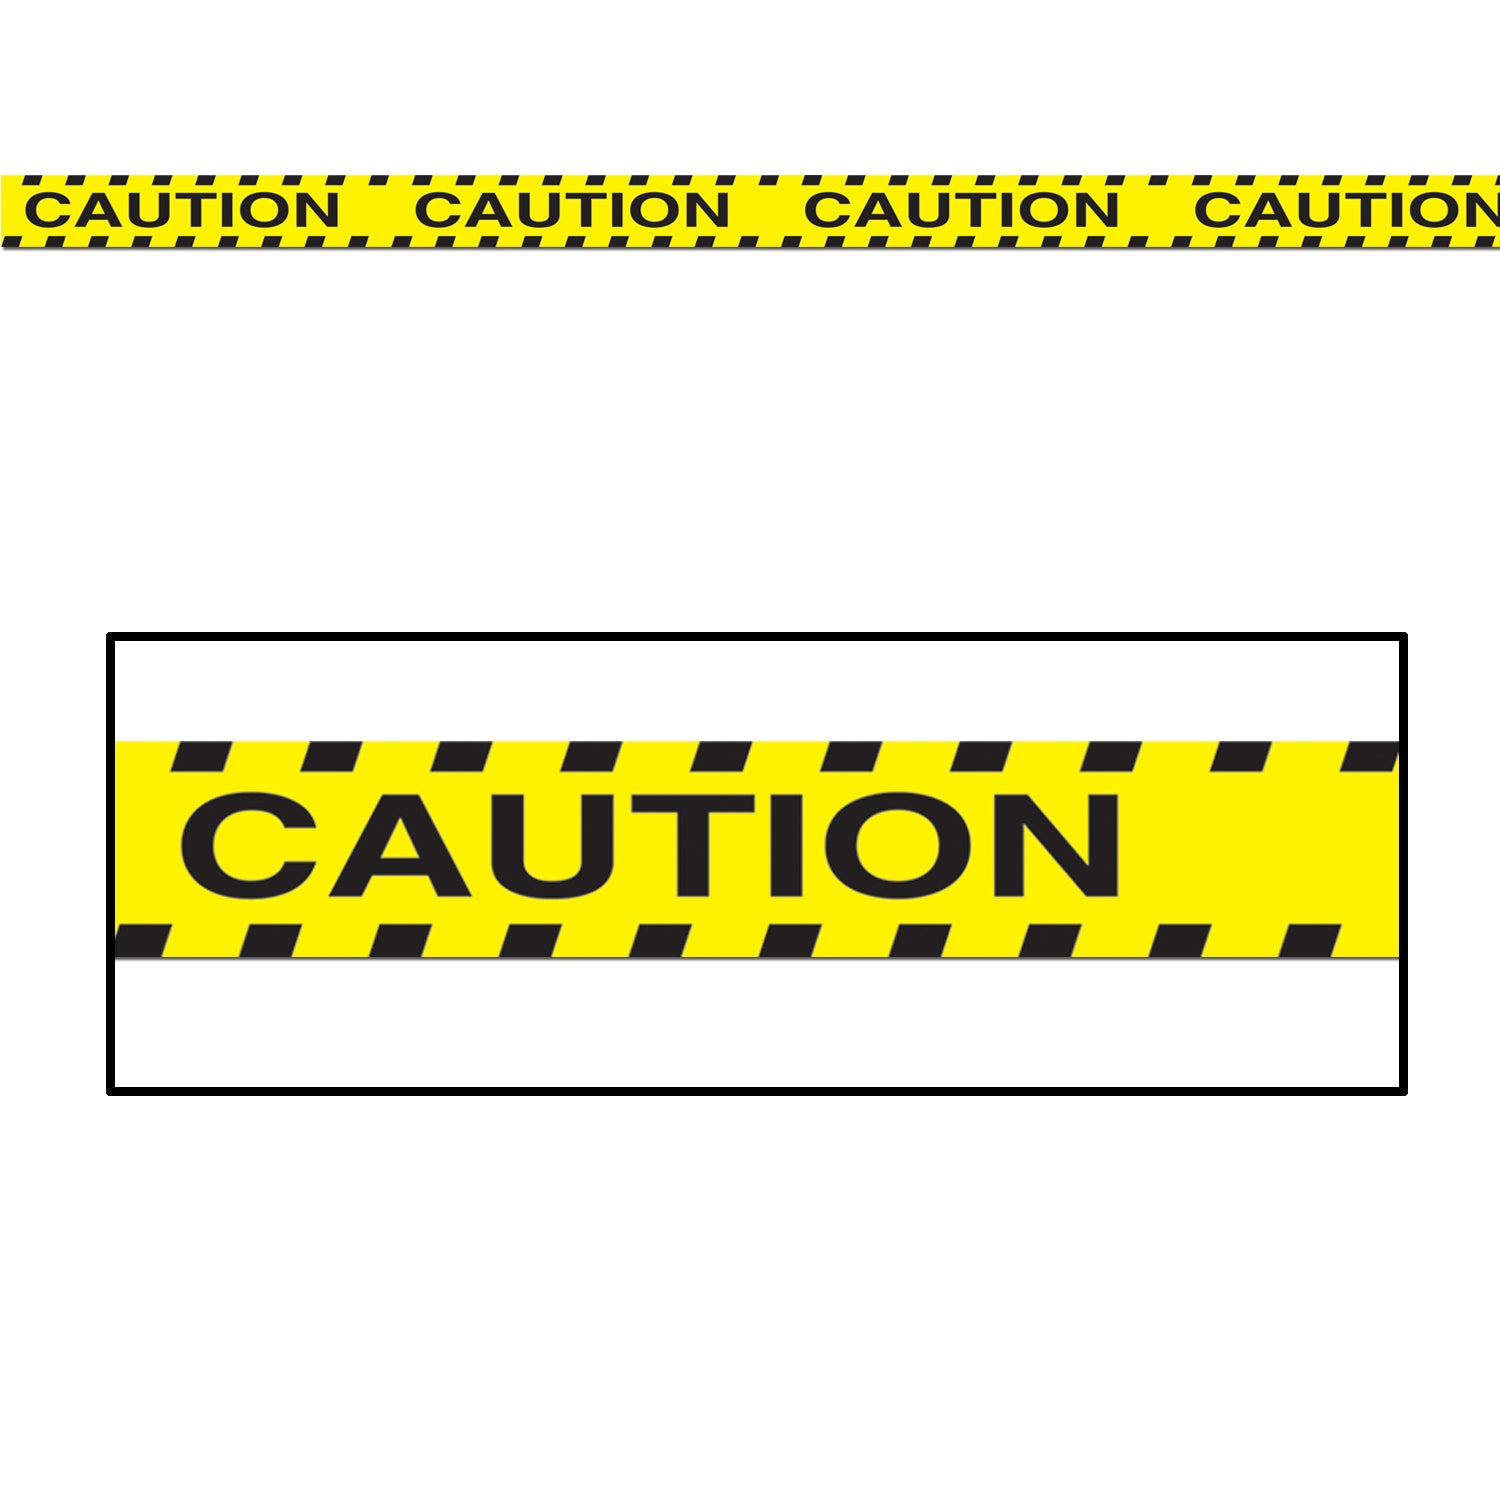 Halloween Caution Tape | 12ct Beistle Halloween Party Caution Party Tape Bulk Party Supplies